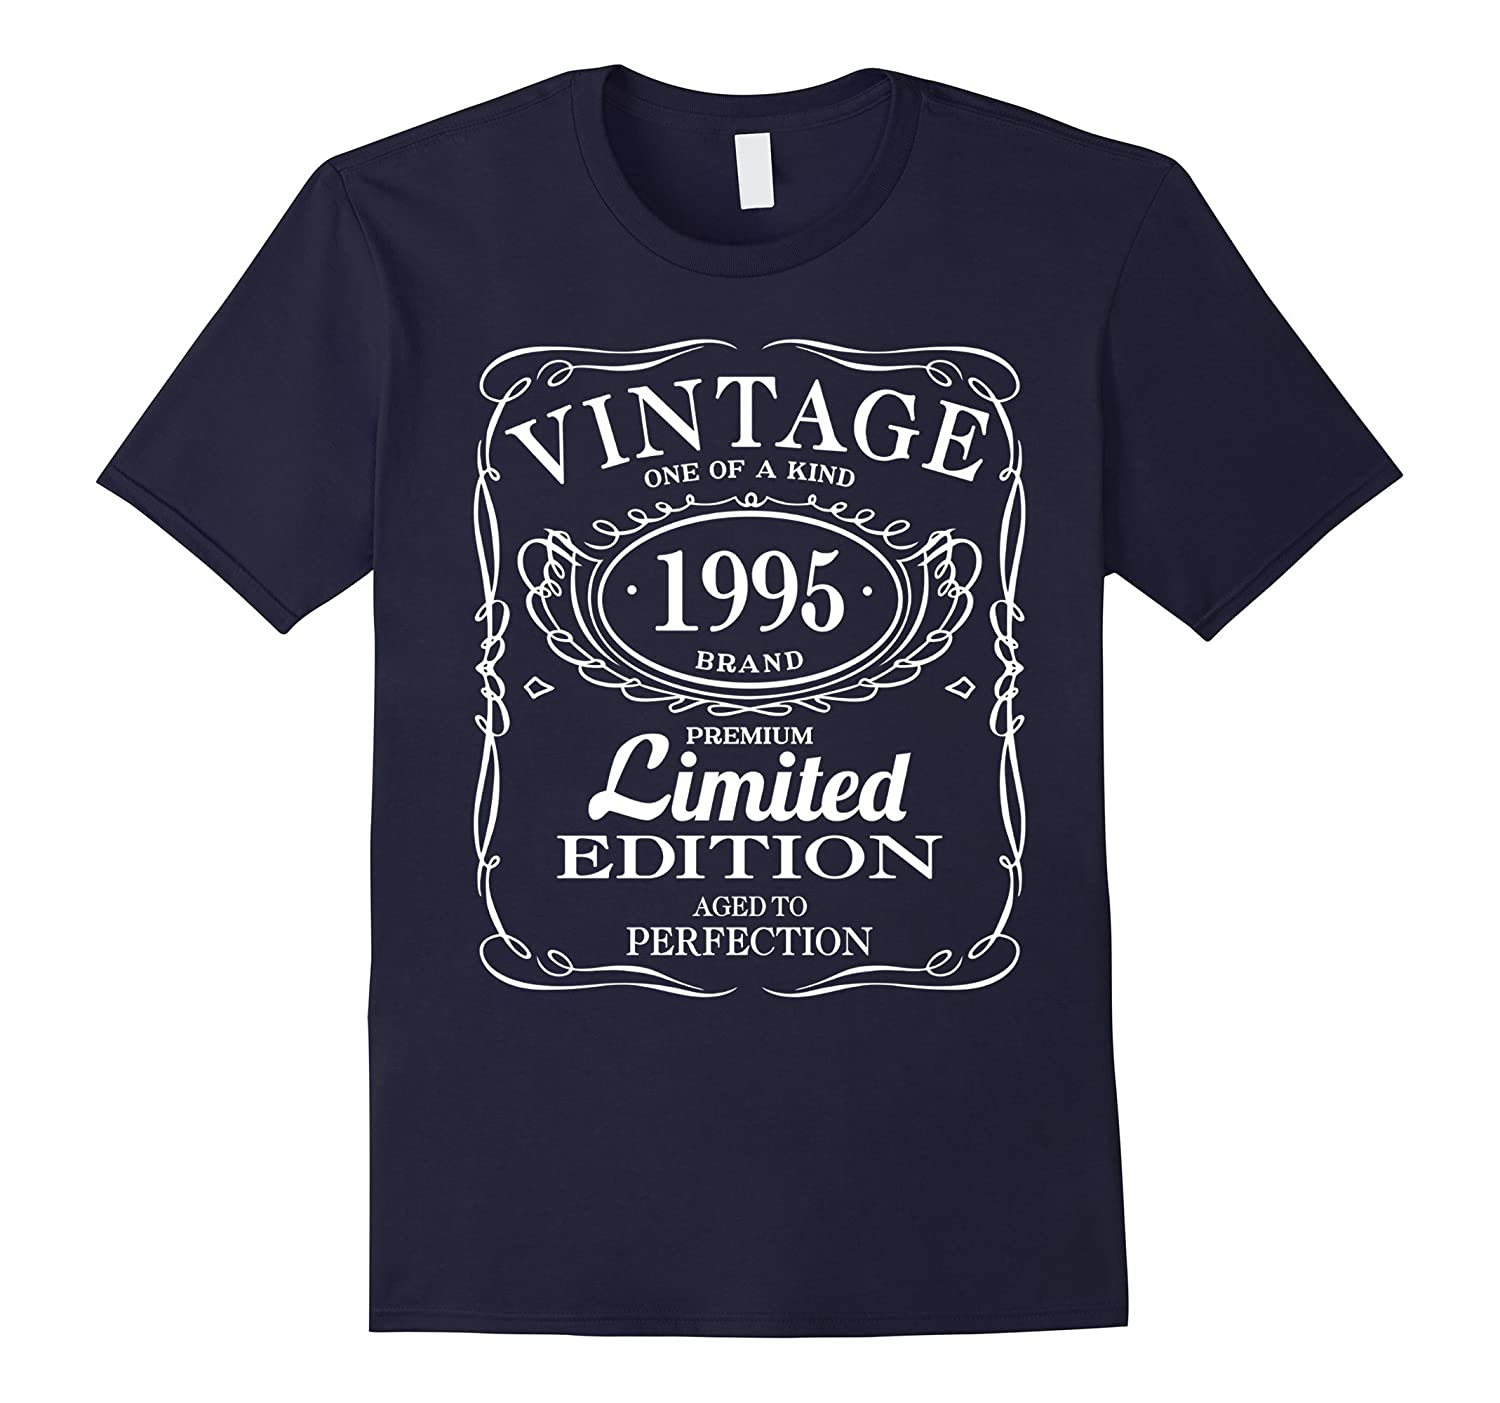 21st Birthday Gift Vintage 1995 Limited Edition T-Shirt-BN